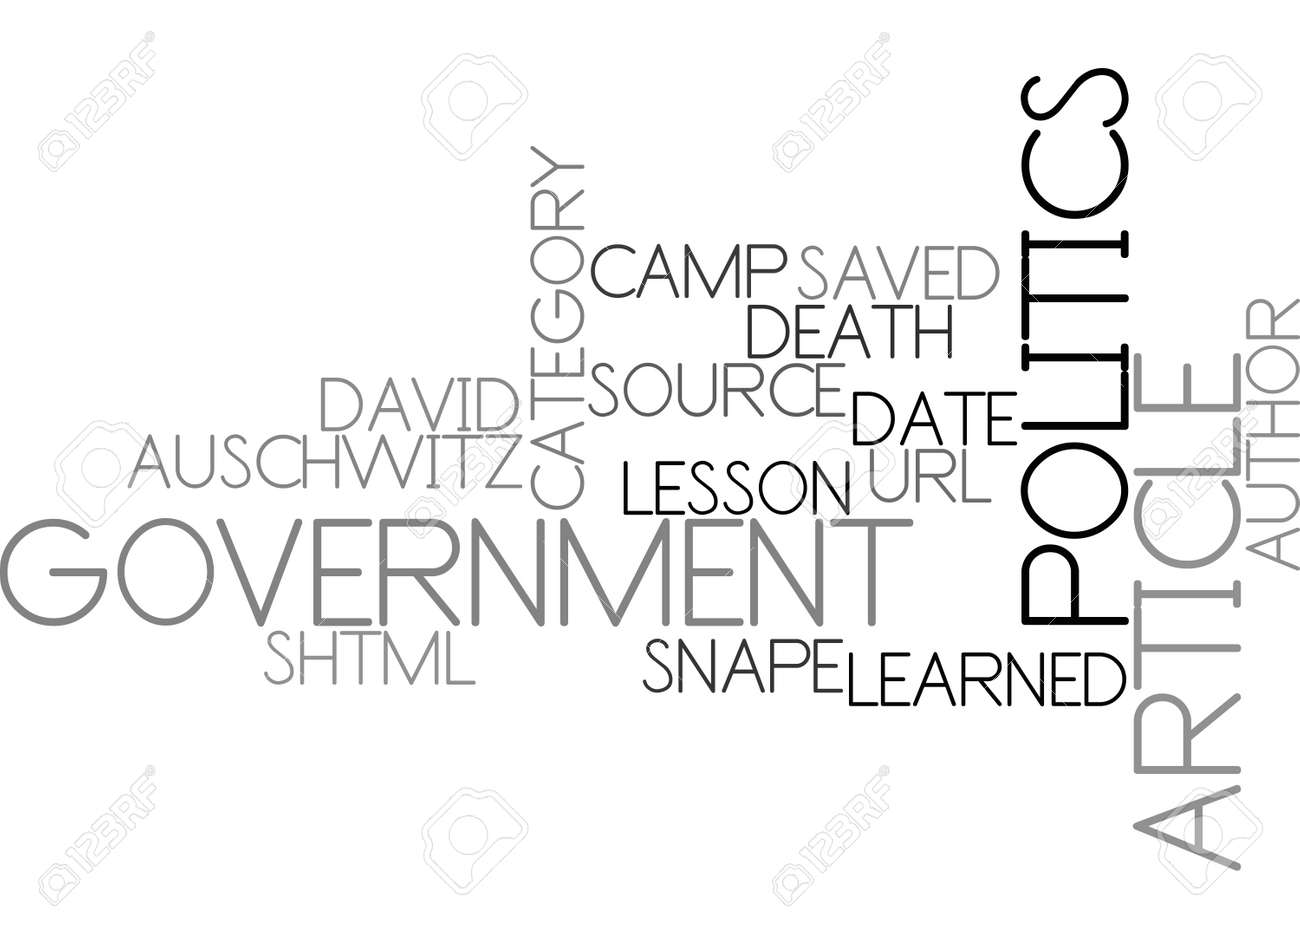 AUSCHWITZ DEATH CAMP LESSON LEARNED TEXT WORD CLOUD CONCEPT - 79505412